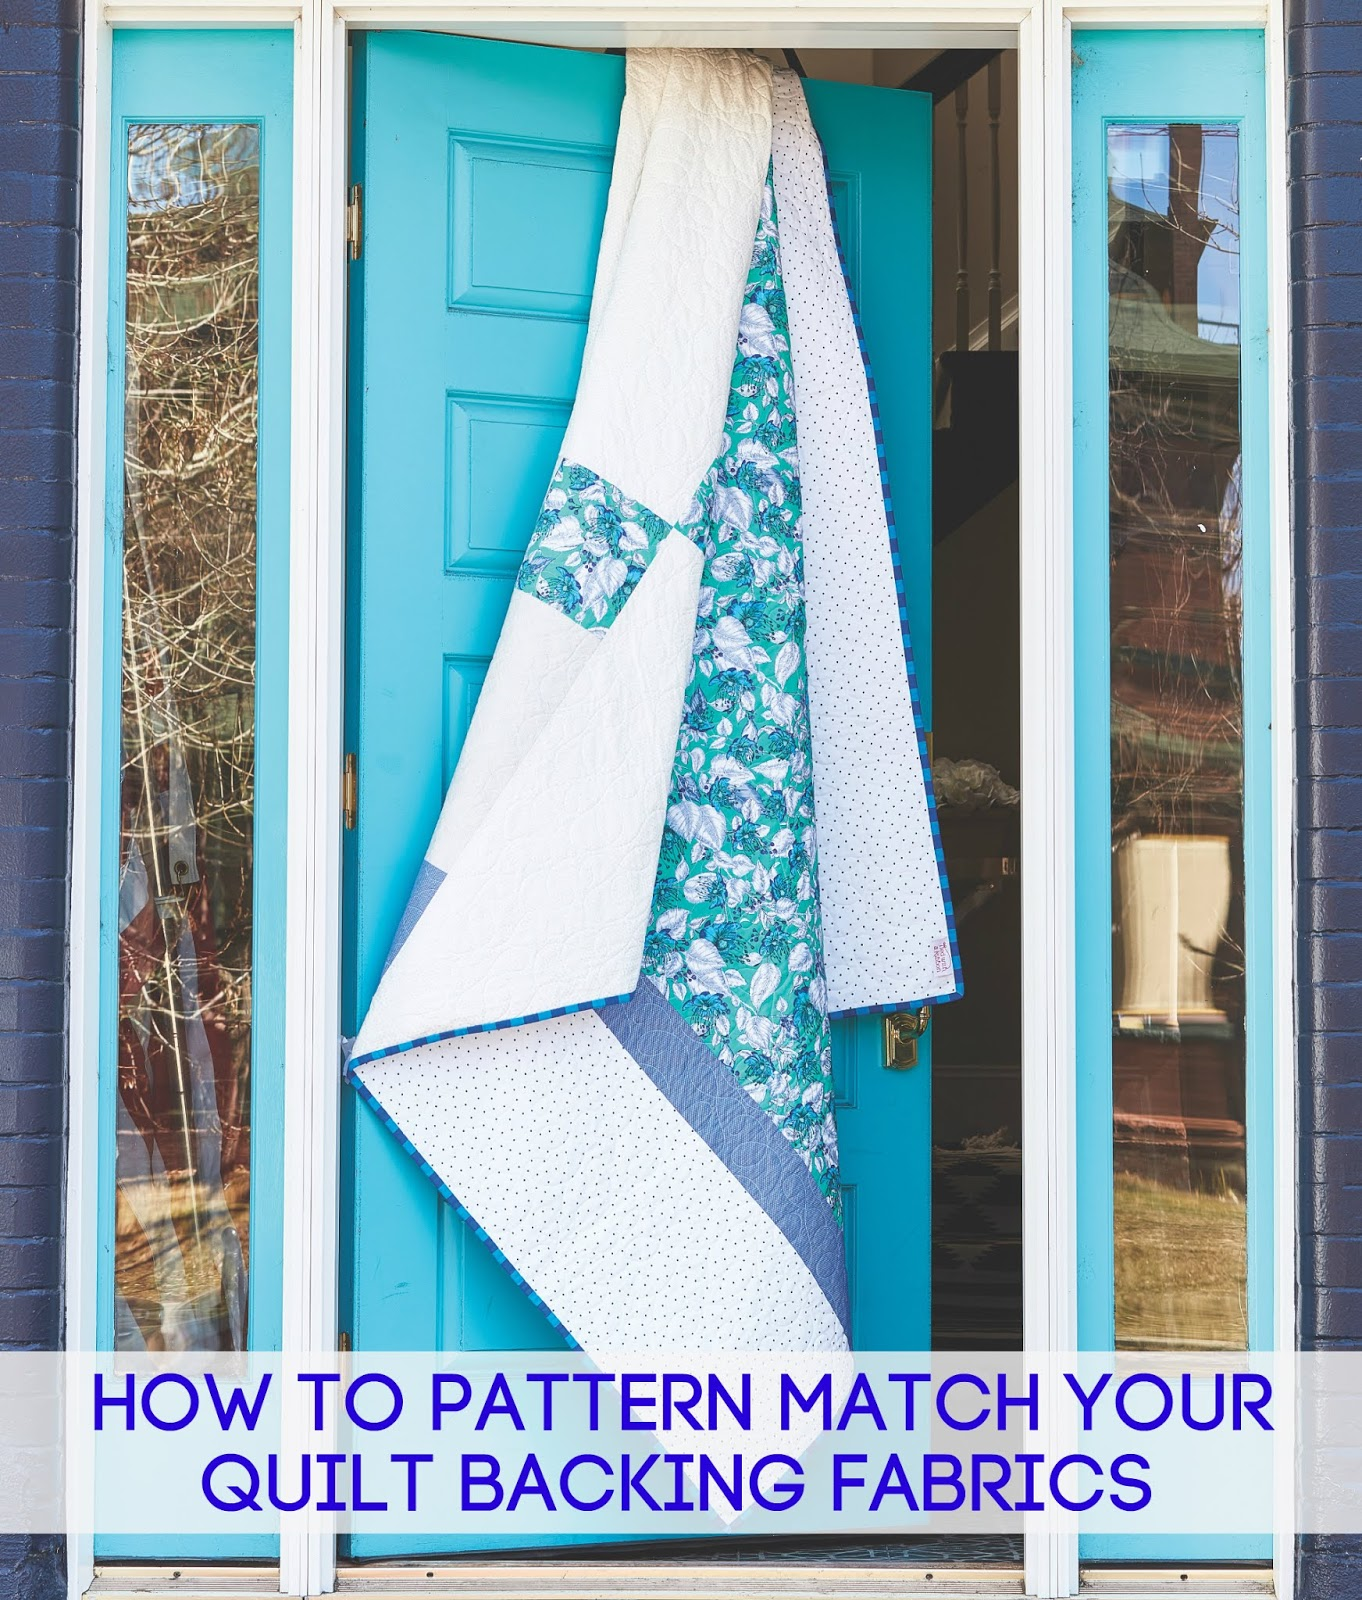 How to Pattern Match your Quilt Backing Fabrics